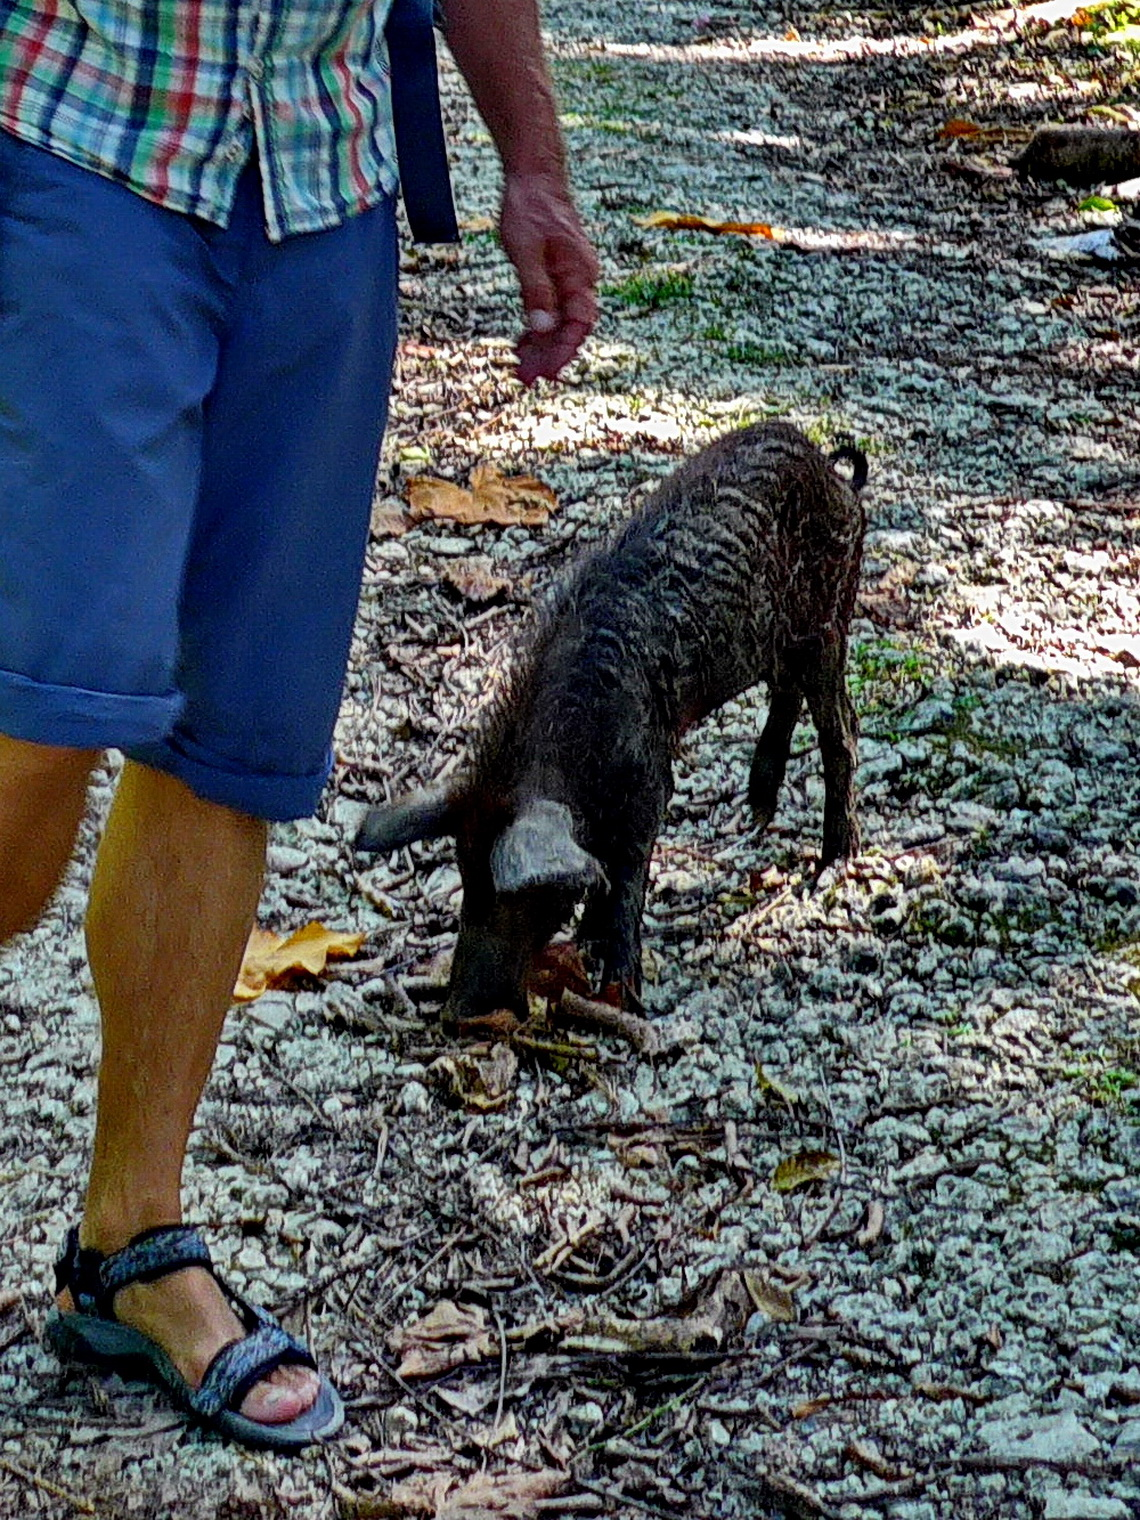 Young Peccary come with us on the way to Playa Bluff